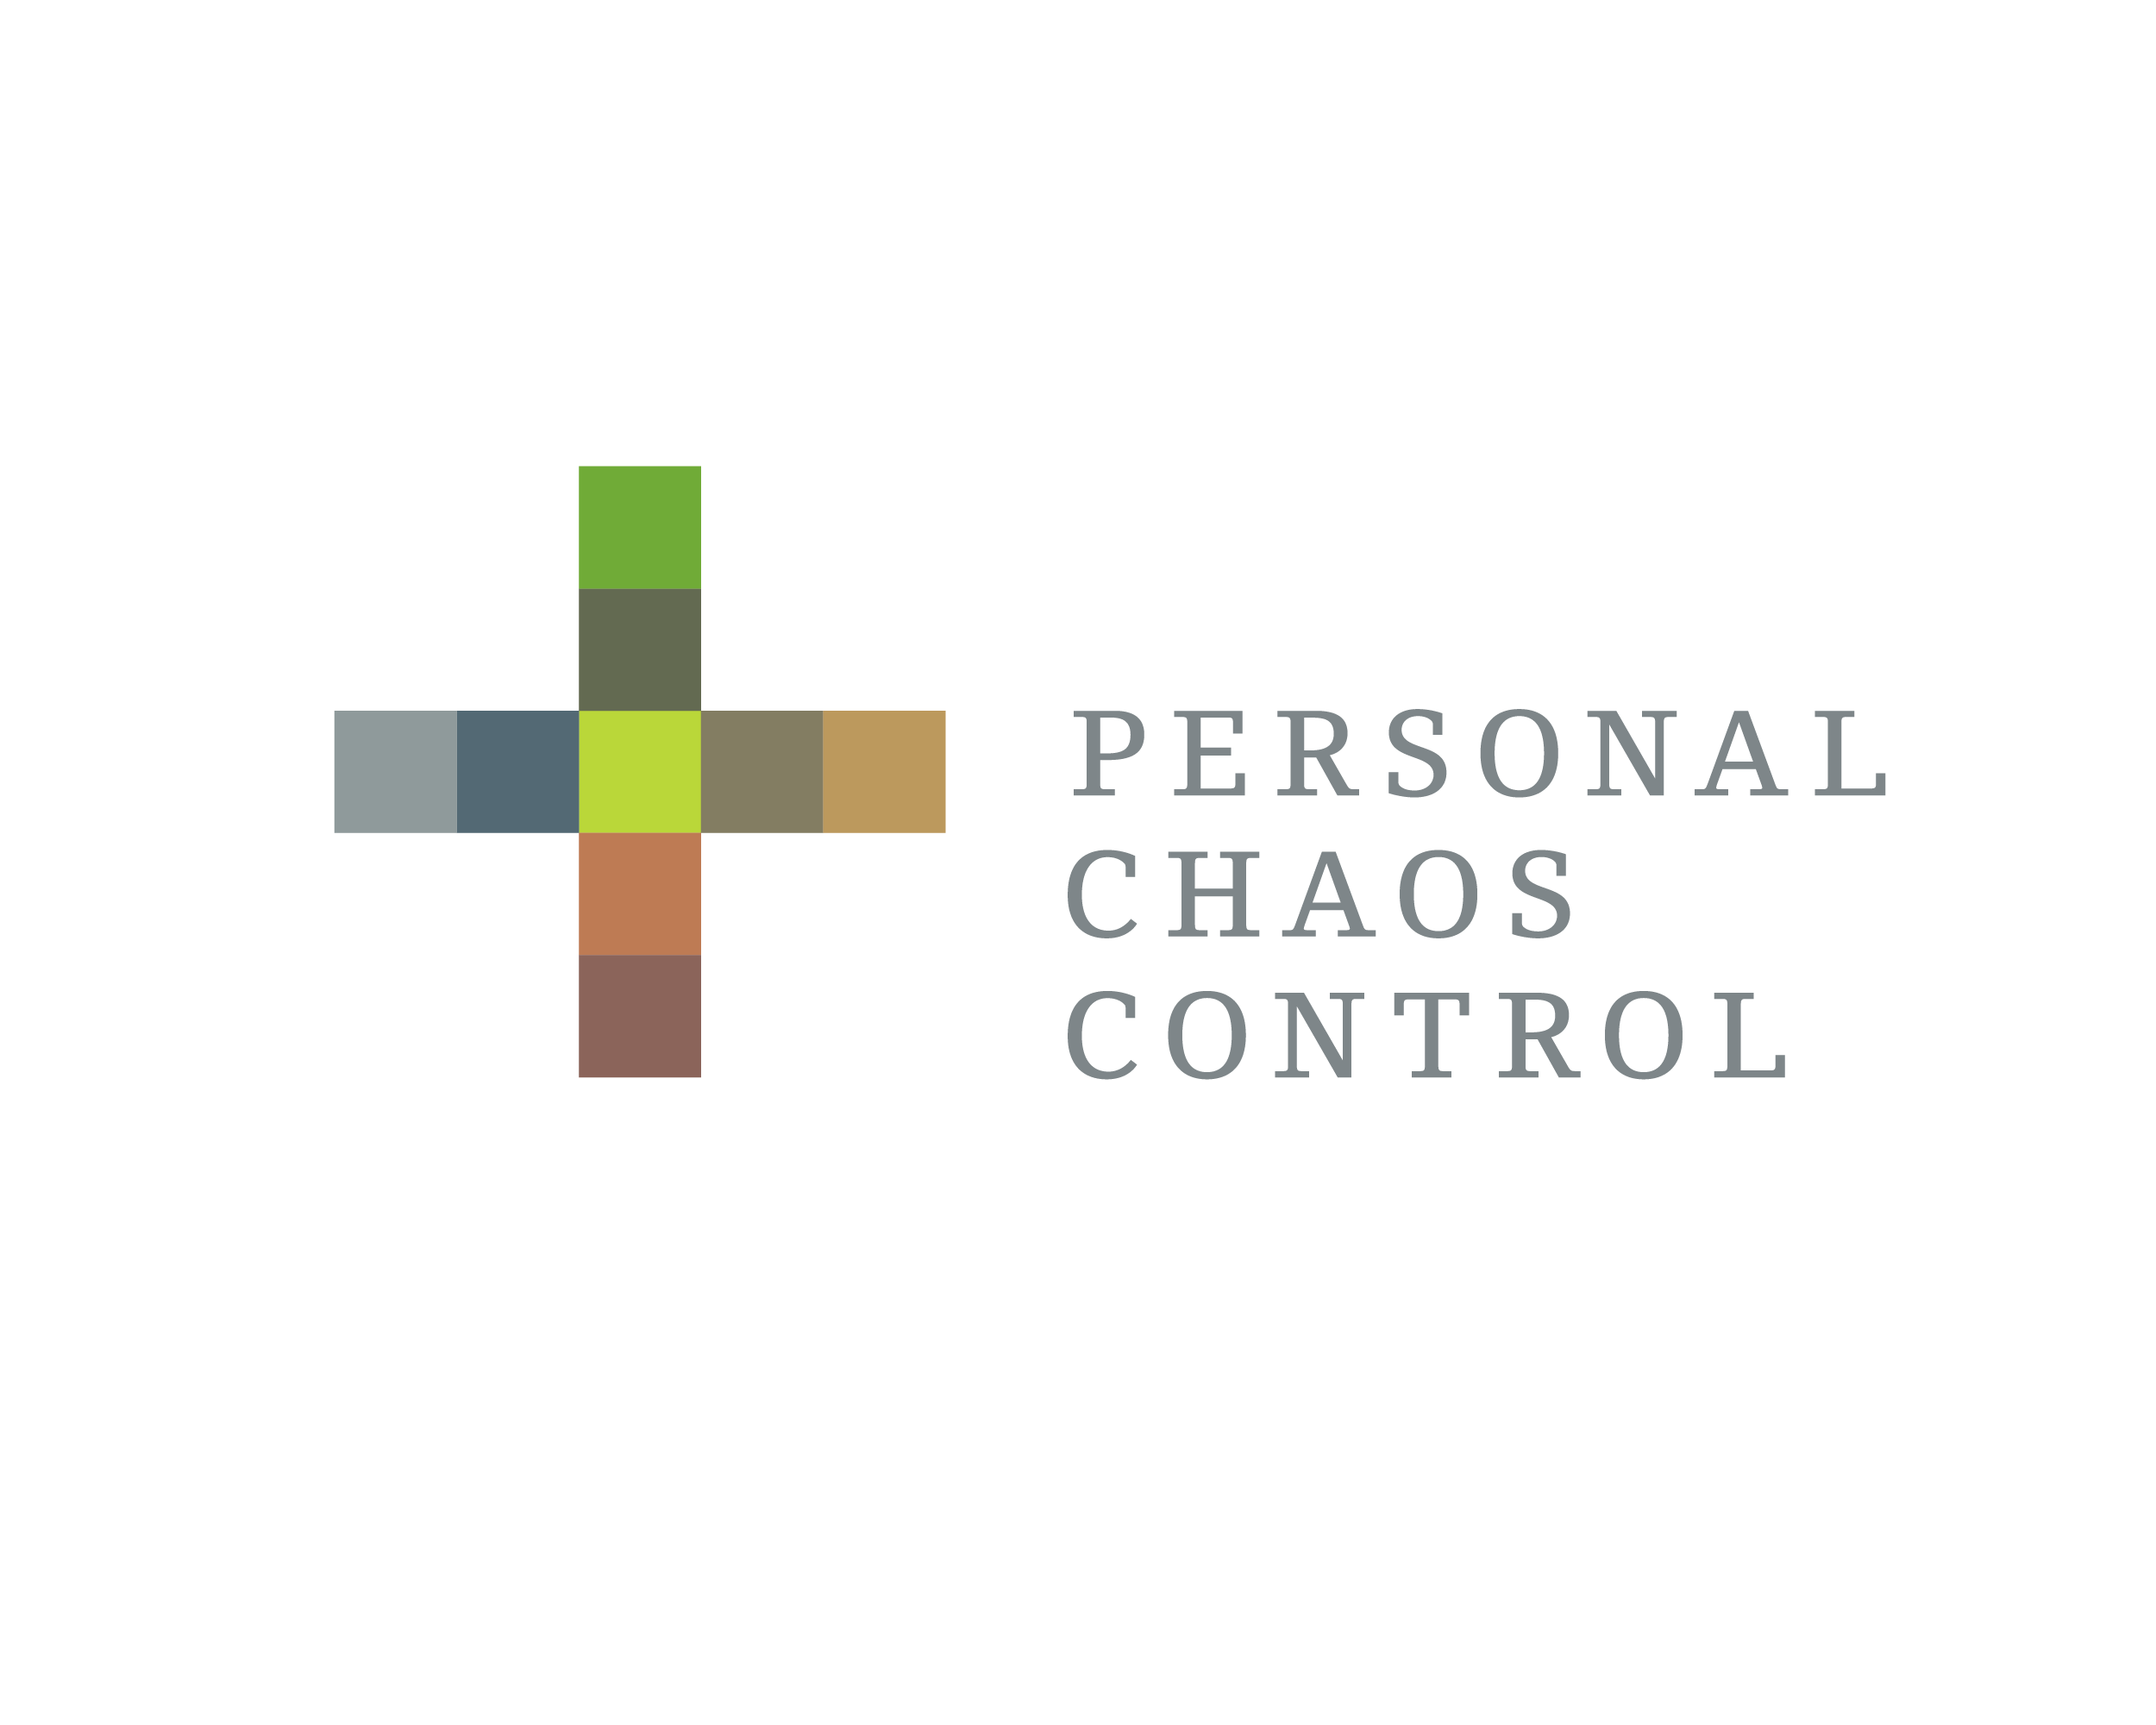 Personal Chaos Control